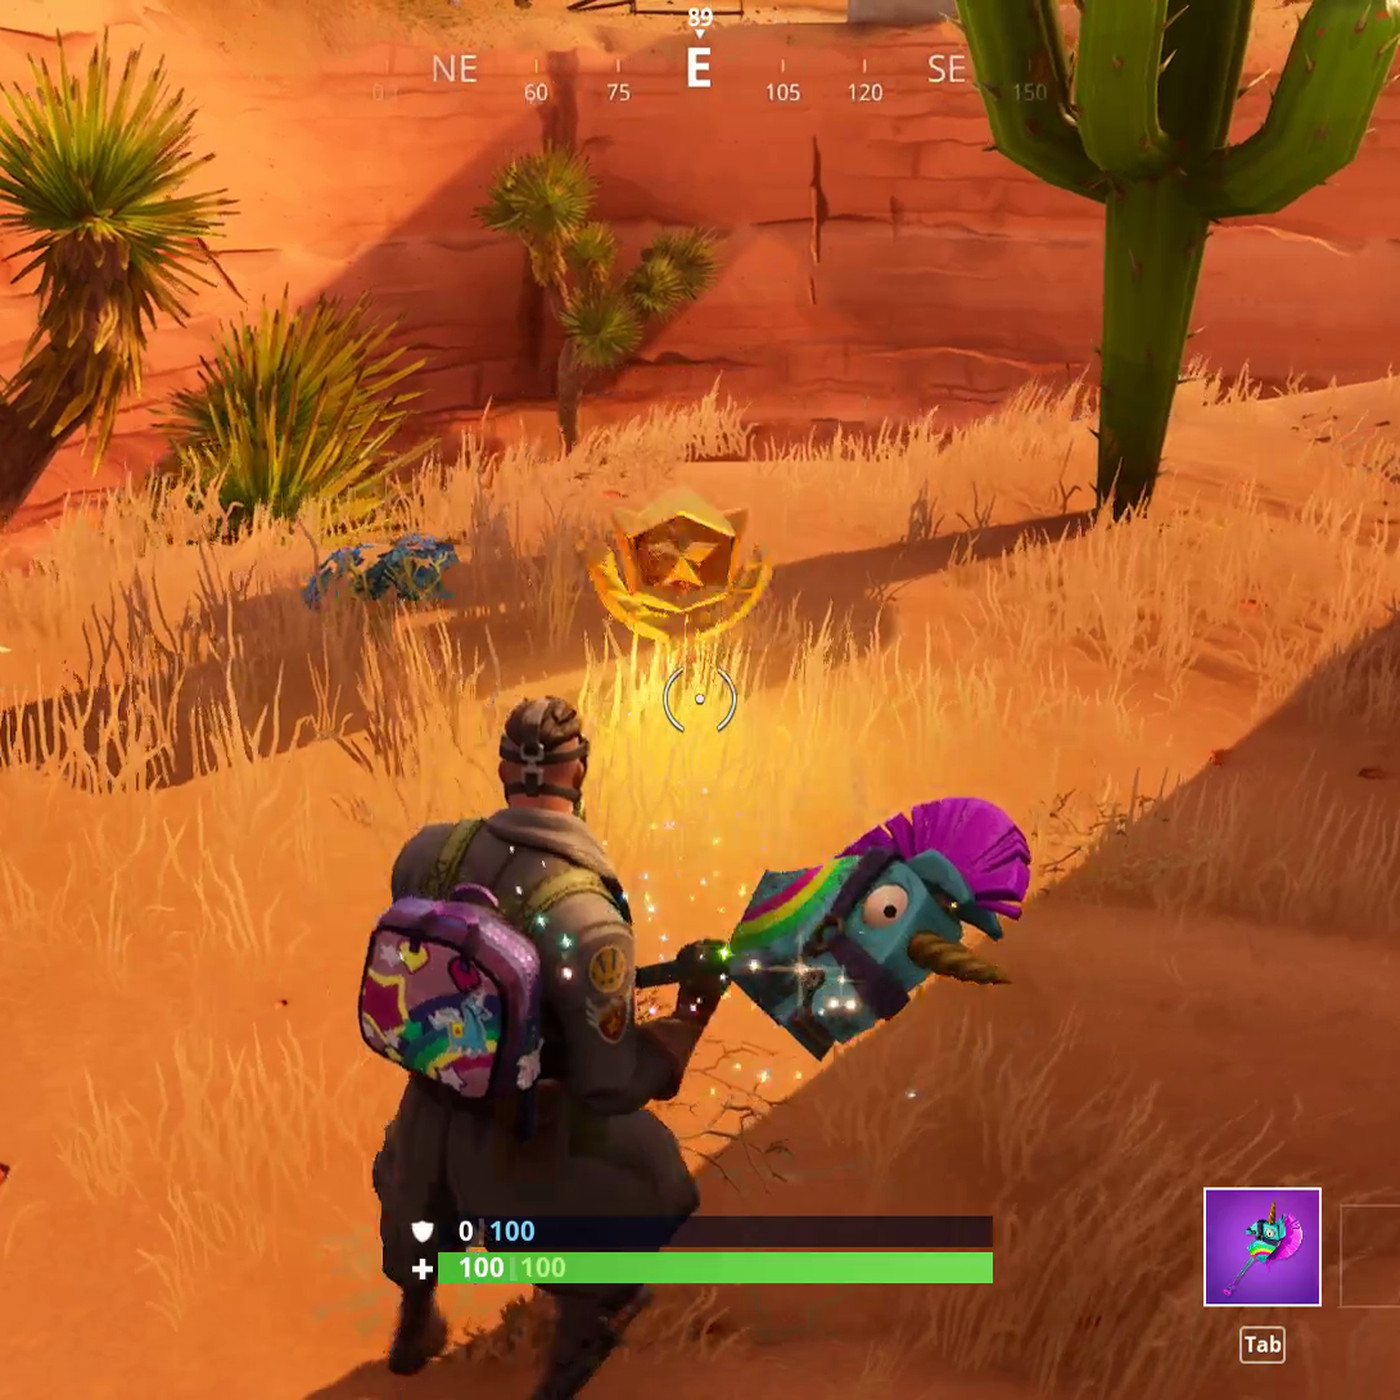 Search An Oasis Rock Archway And Dinosaurs Fortnite Search Between An Oasis Rock Archway And Dinosaurs Fortnite Challenge Location Guide Season 5 Week 2 Polygon